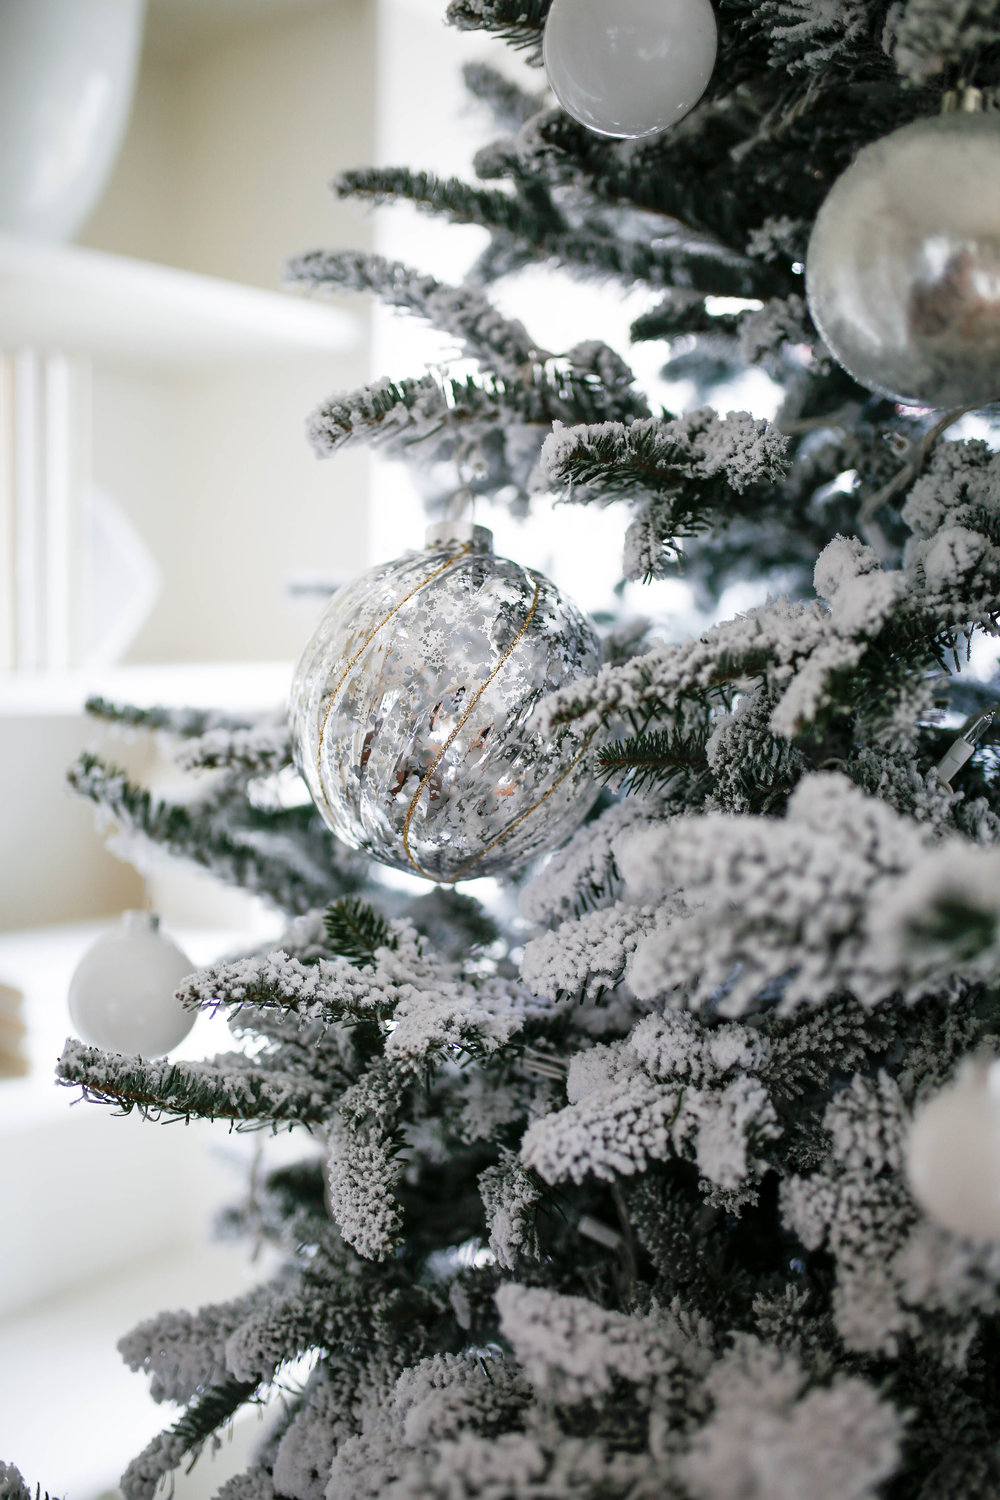 Silver and White Ball ornaments on flocked Christmas Tree